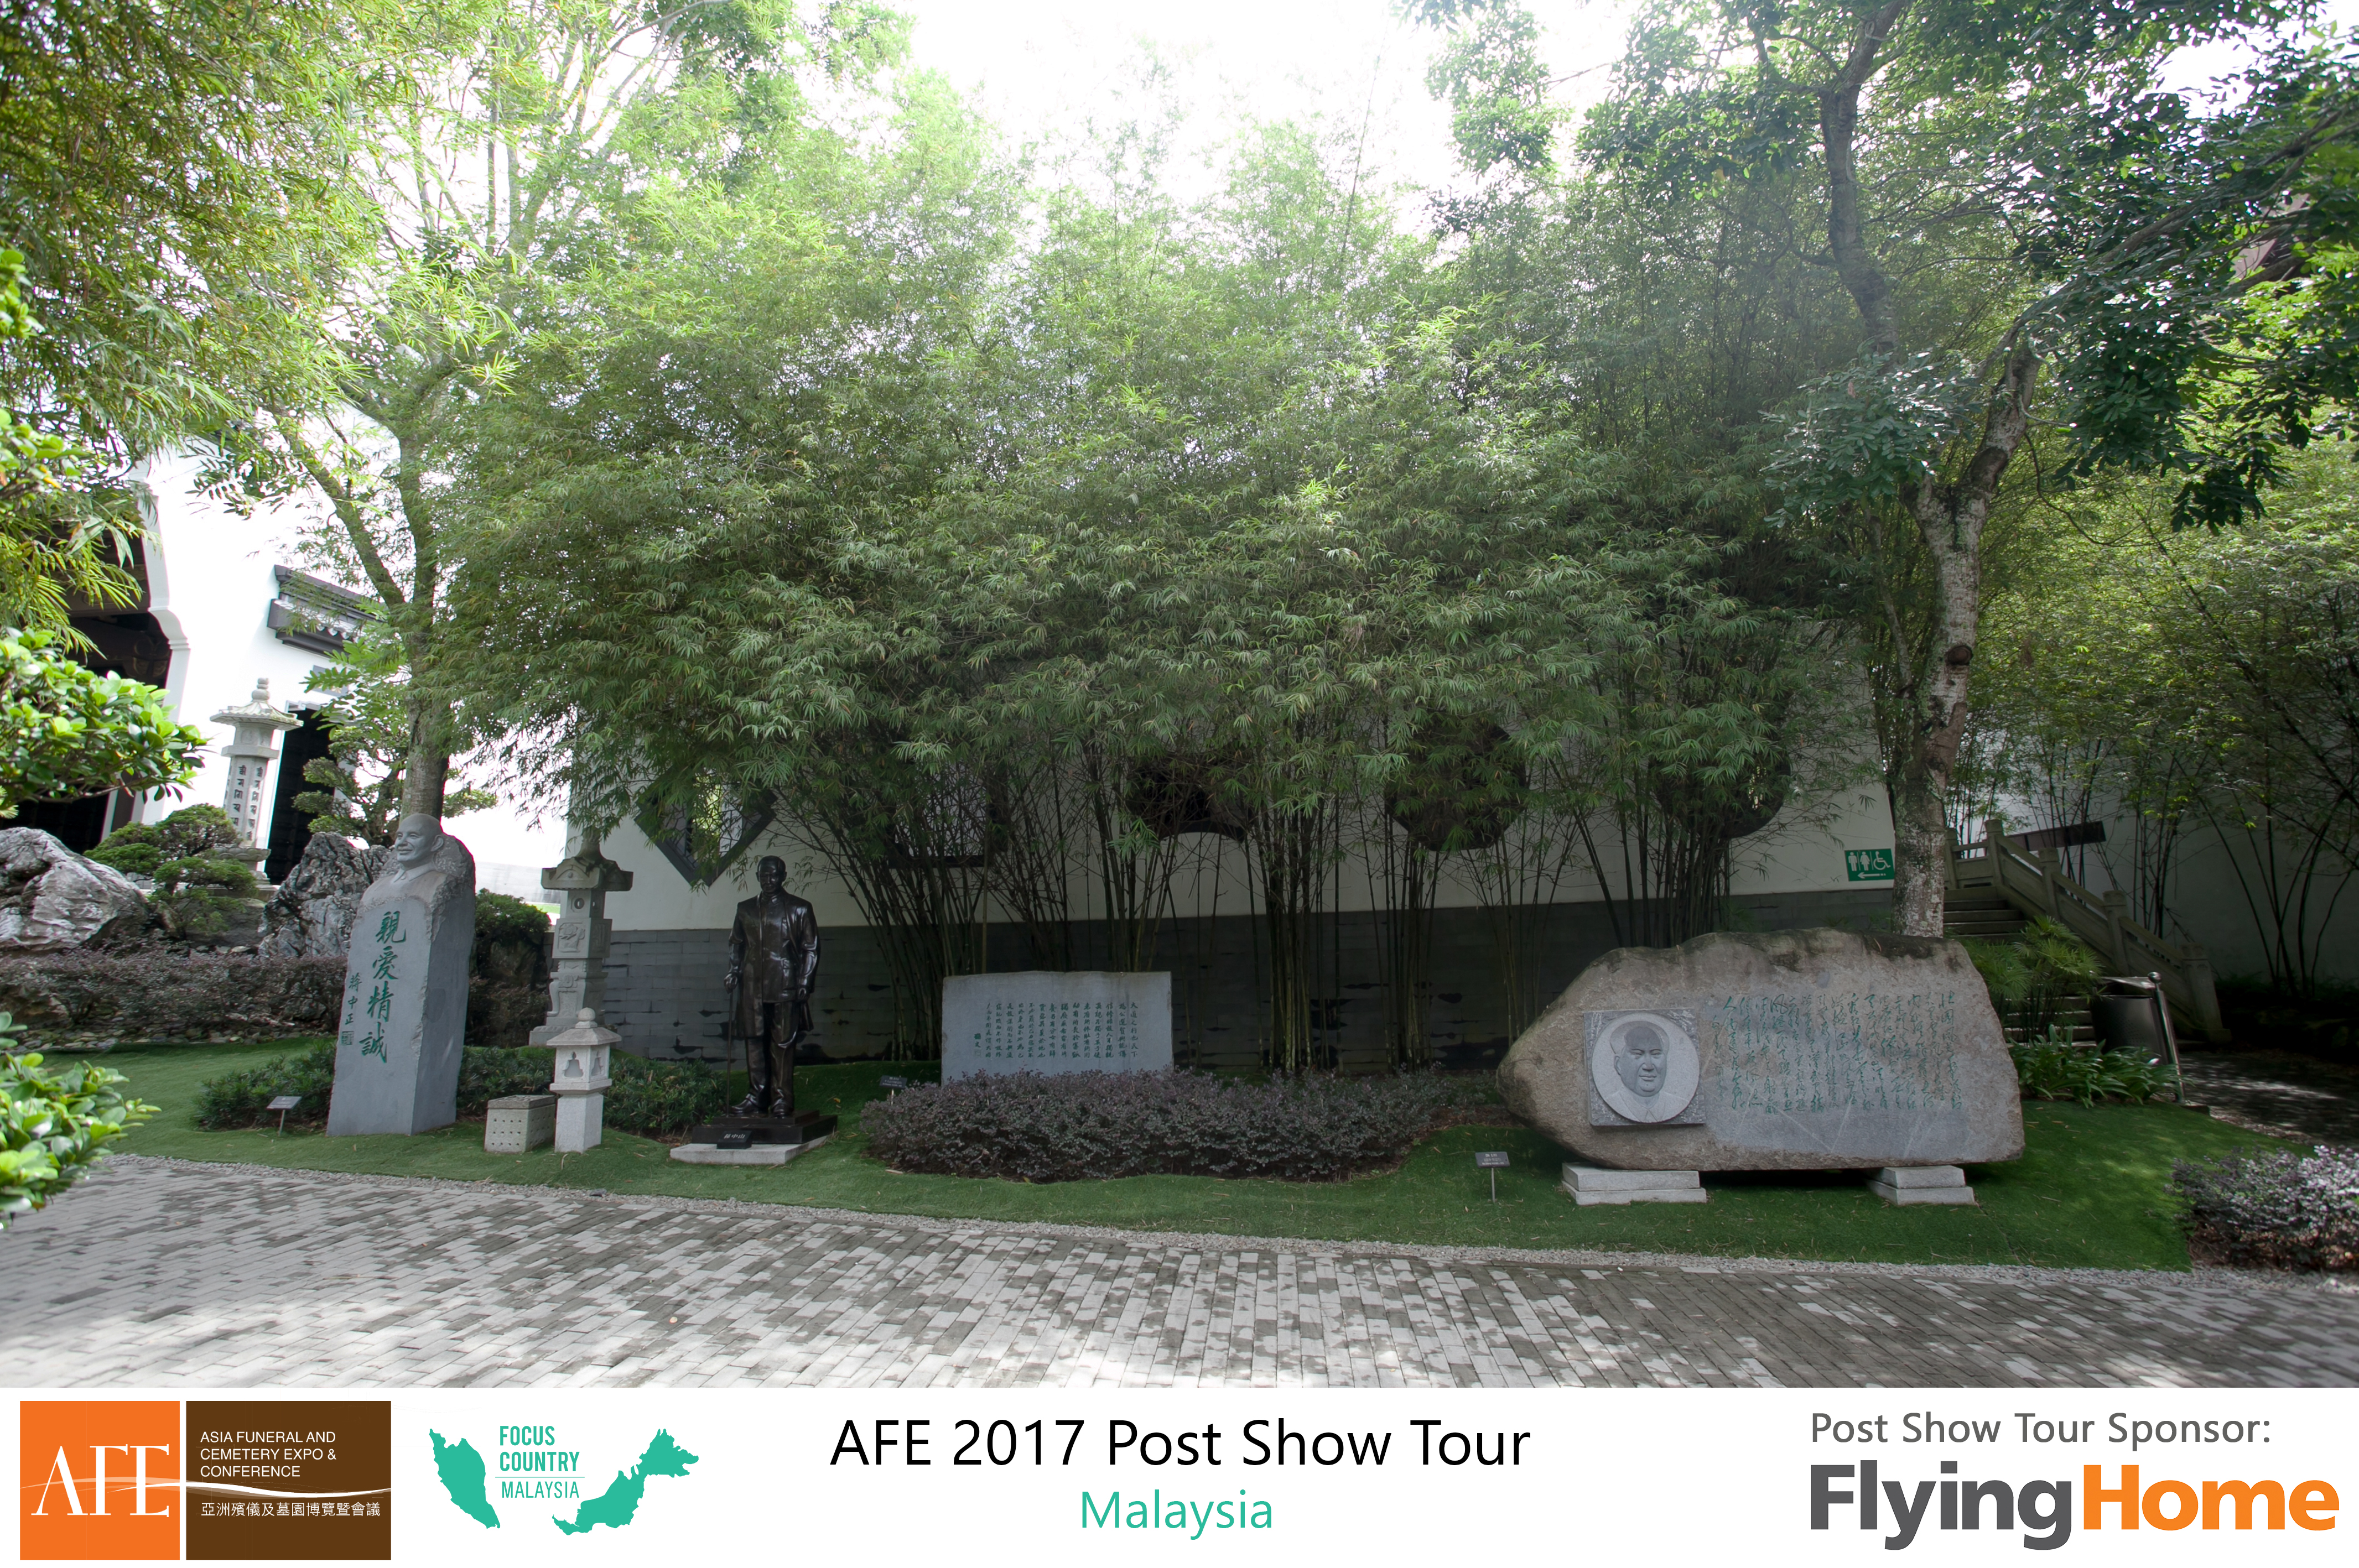 AFE Post Show Tour 2017 Day 2 - 57